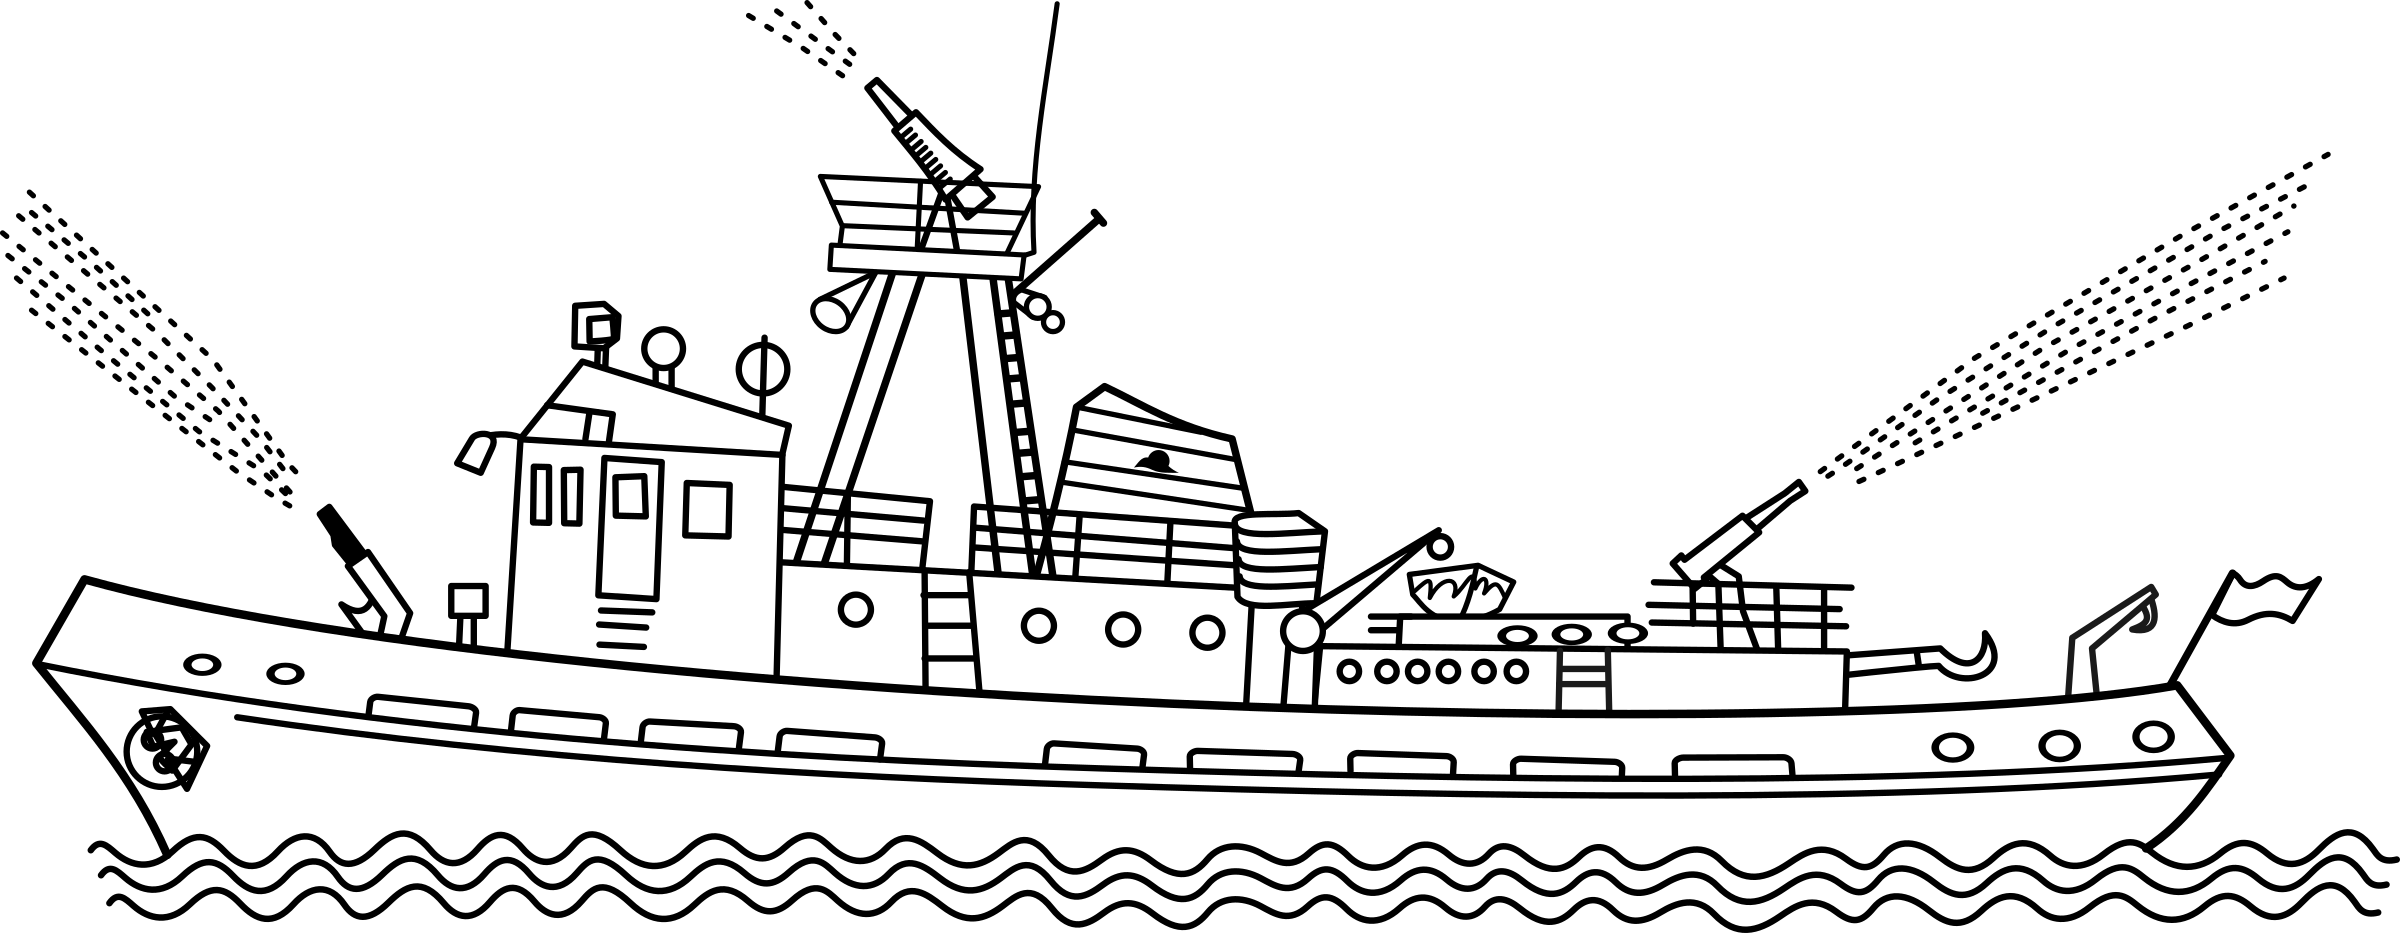 Fire boat clipart Clipground